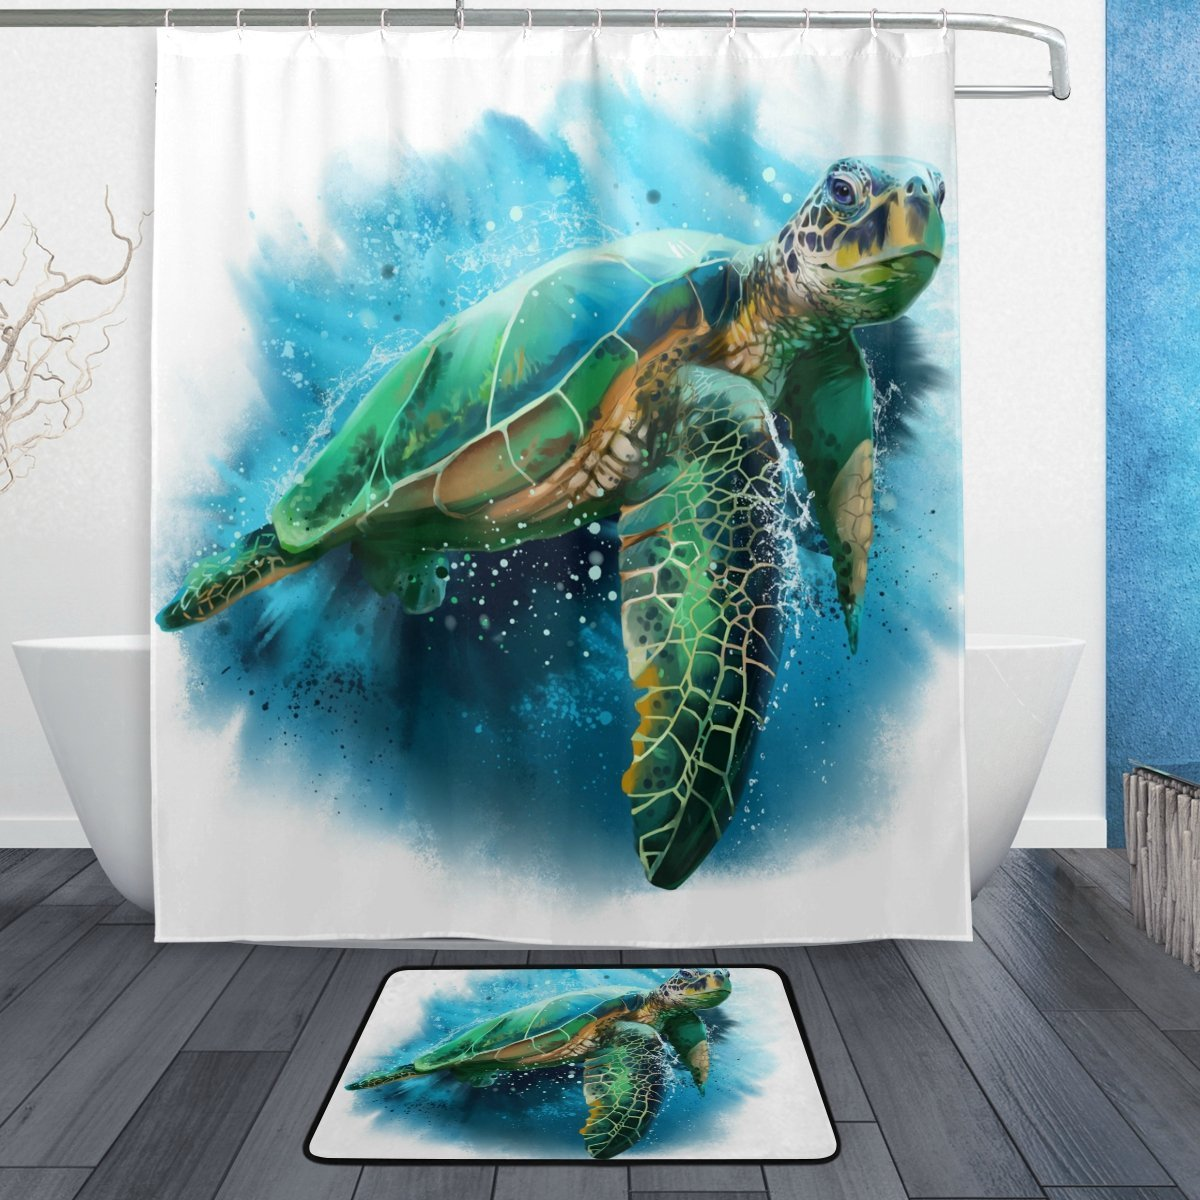 Us 15 35 36 Off Funny Ocean Sea Turtle Shower Curtain And Mat Set Marine Sea Animal Waterproof Fabric Bathroom Curtain In Shower Curtains From Home